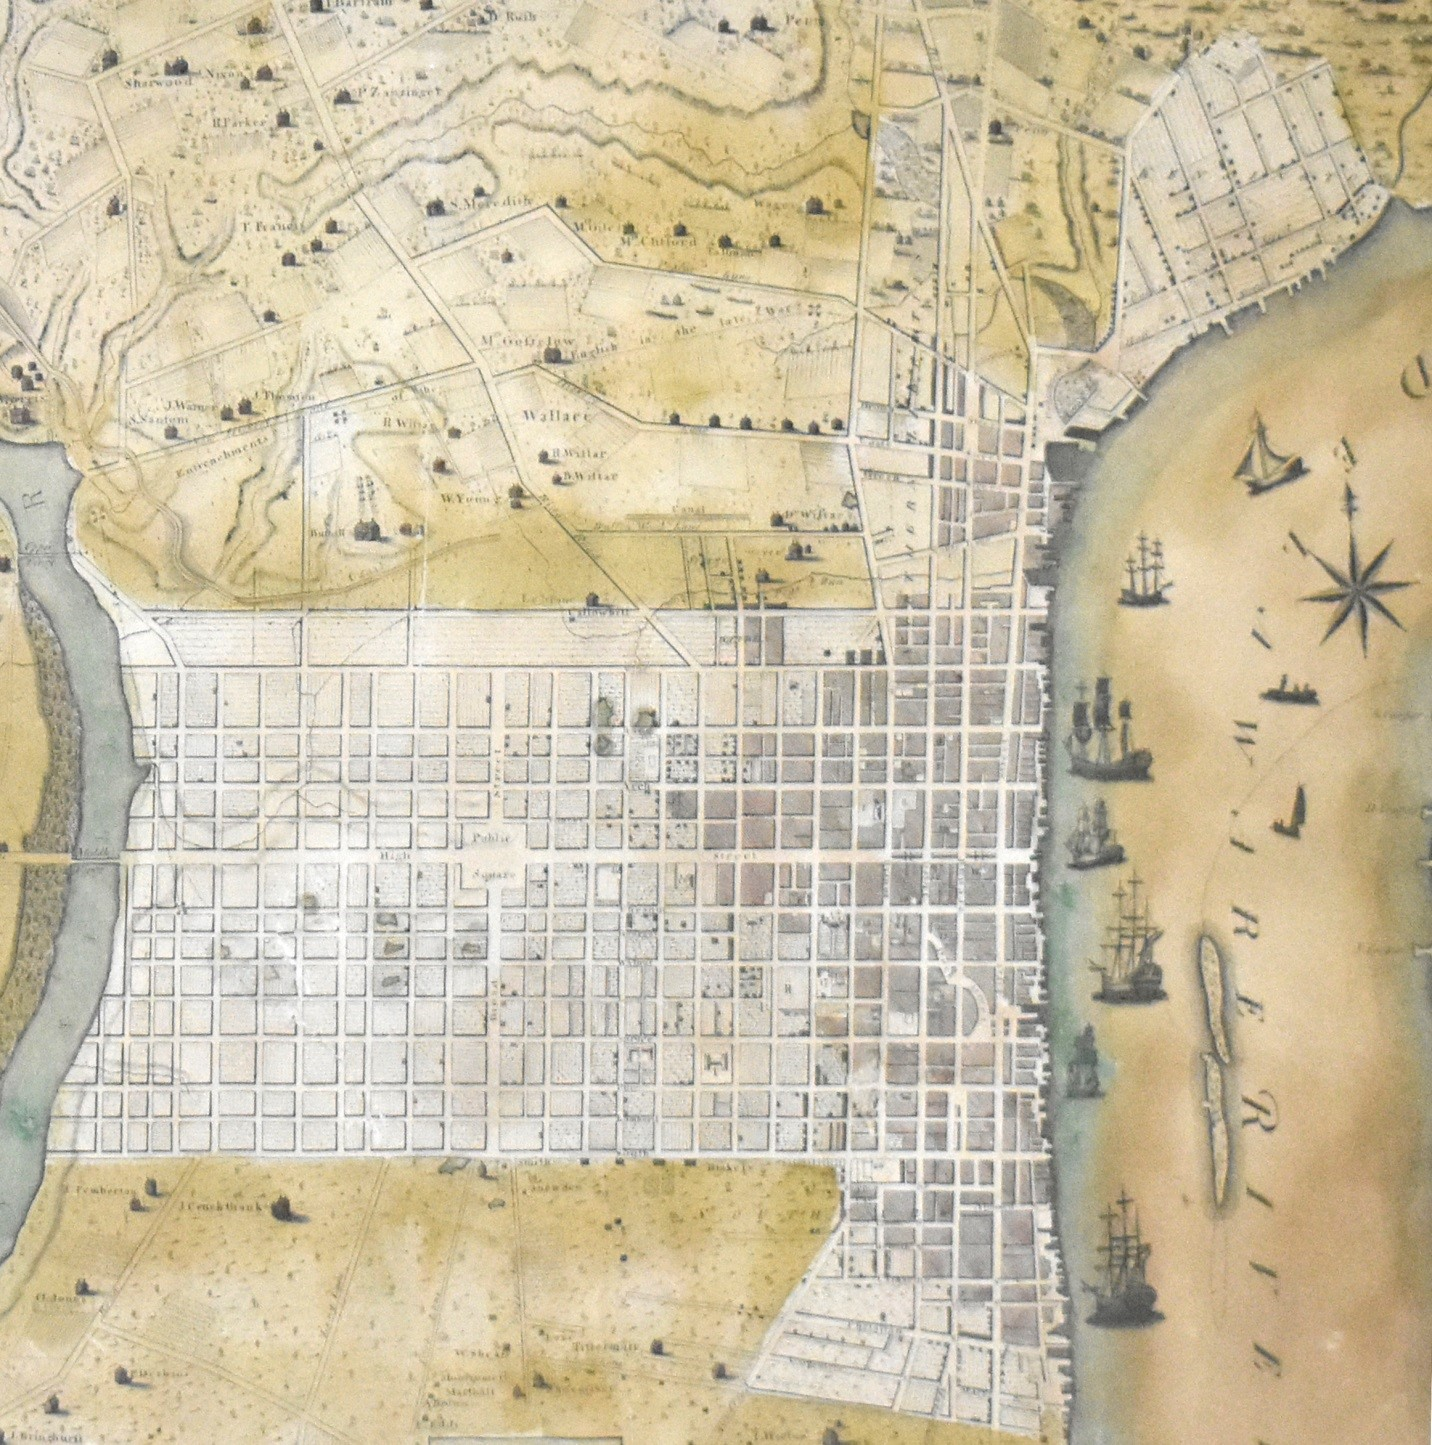 "Image caption: Detail fromP.C. Varlé, ""To the Citizens of Philadelphia This Plan of the City and its Environs Is respectfully dedicated by the Editor."" Philadelphia: [1796]. Map engraved by Robert Scot. Girard College Historical Collections."